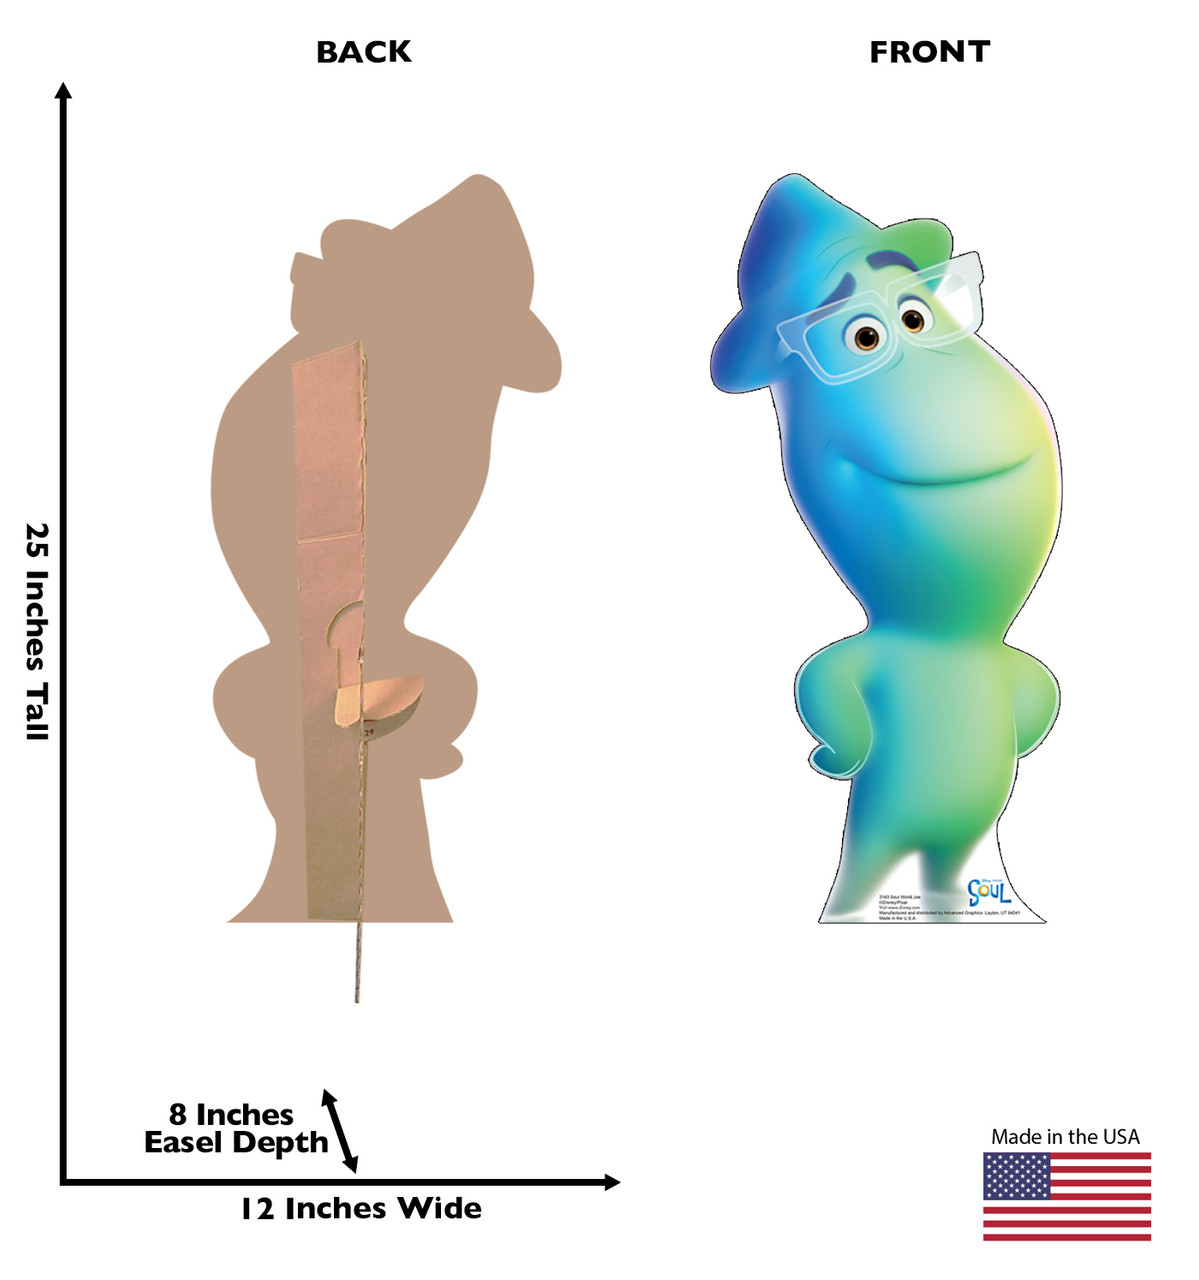 Life-size cardboard standee of Soul World Joe from Disney's Movie Soul with back and front dimensions.